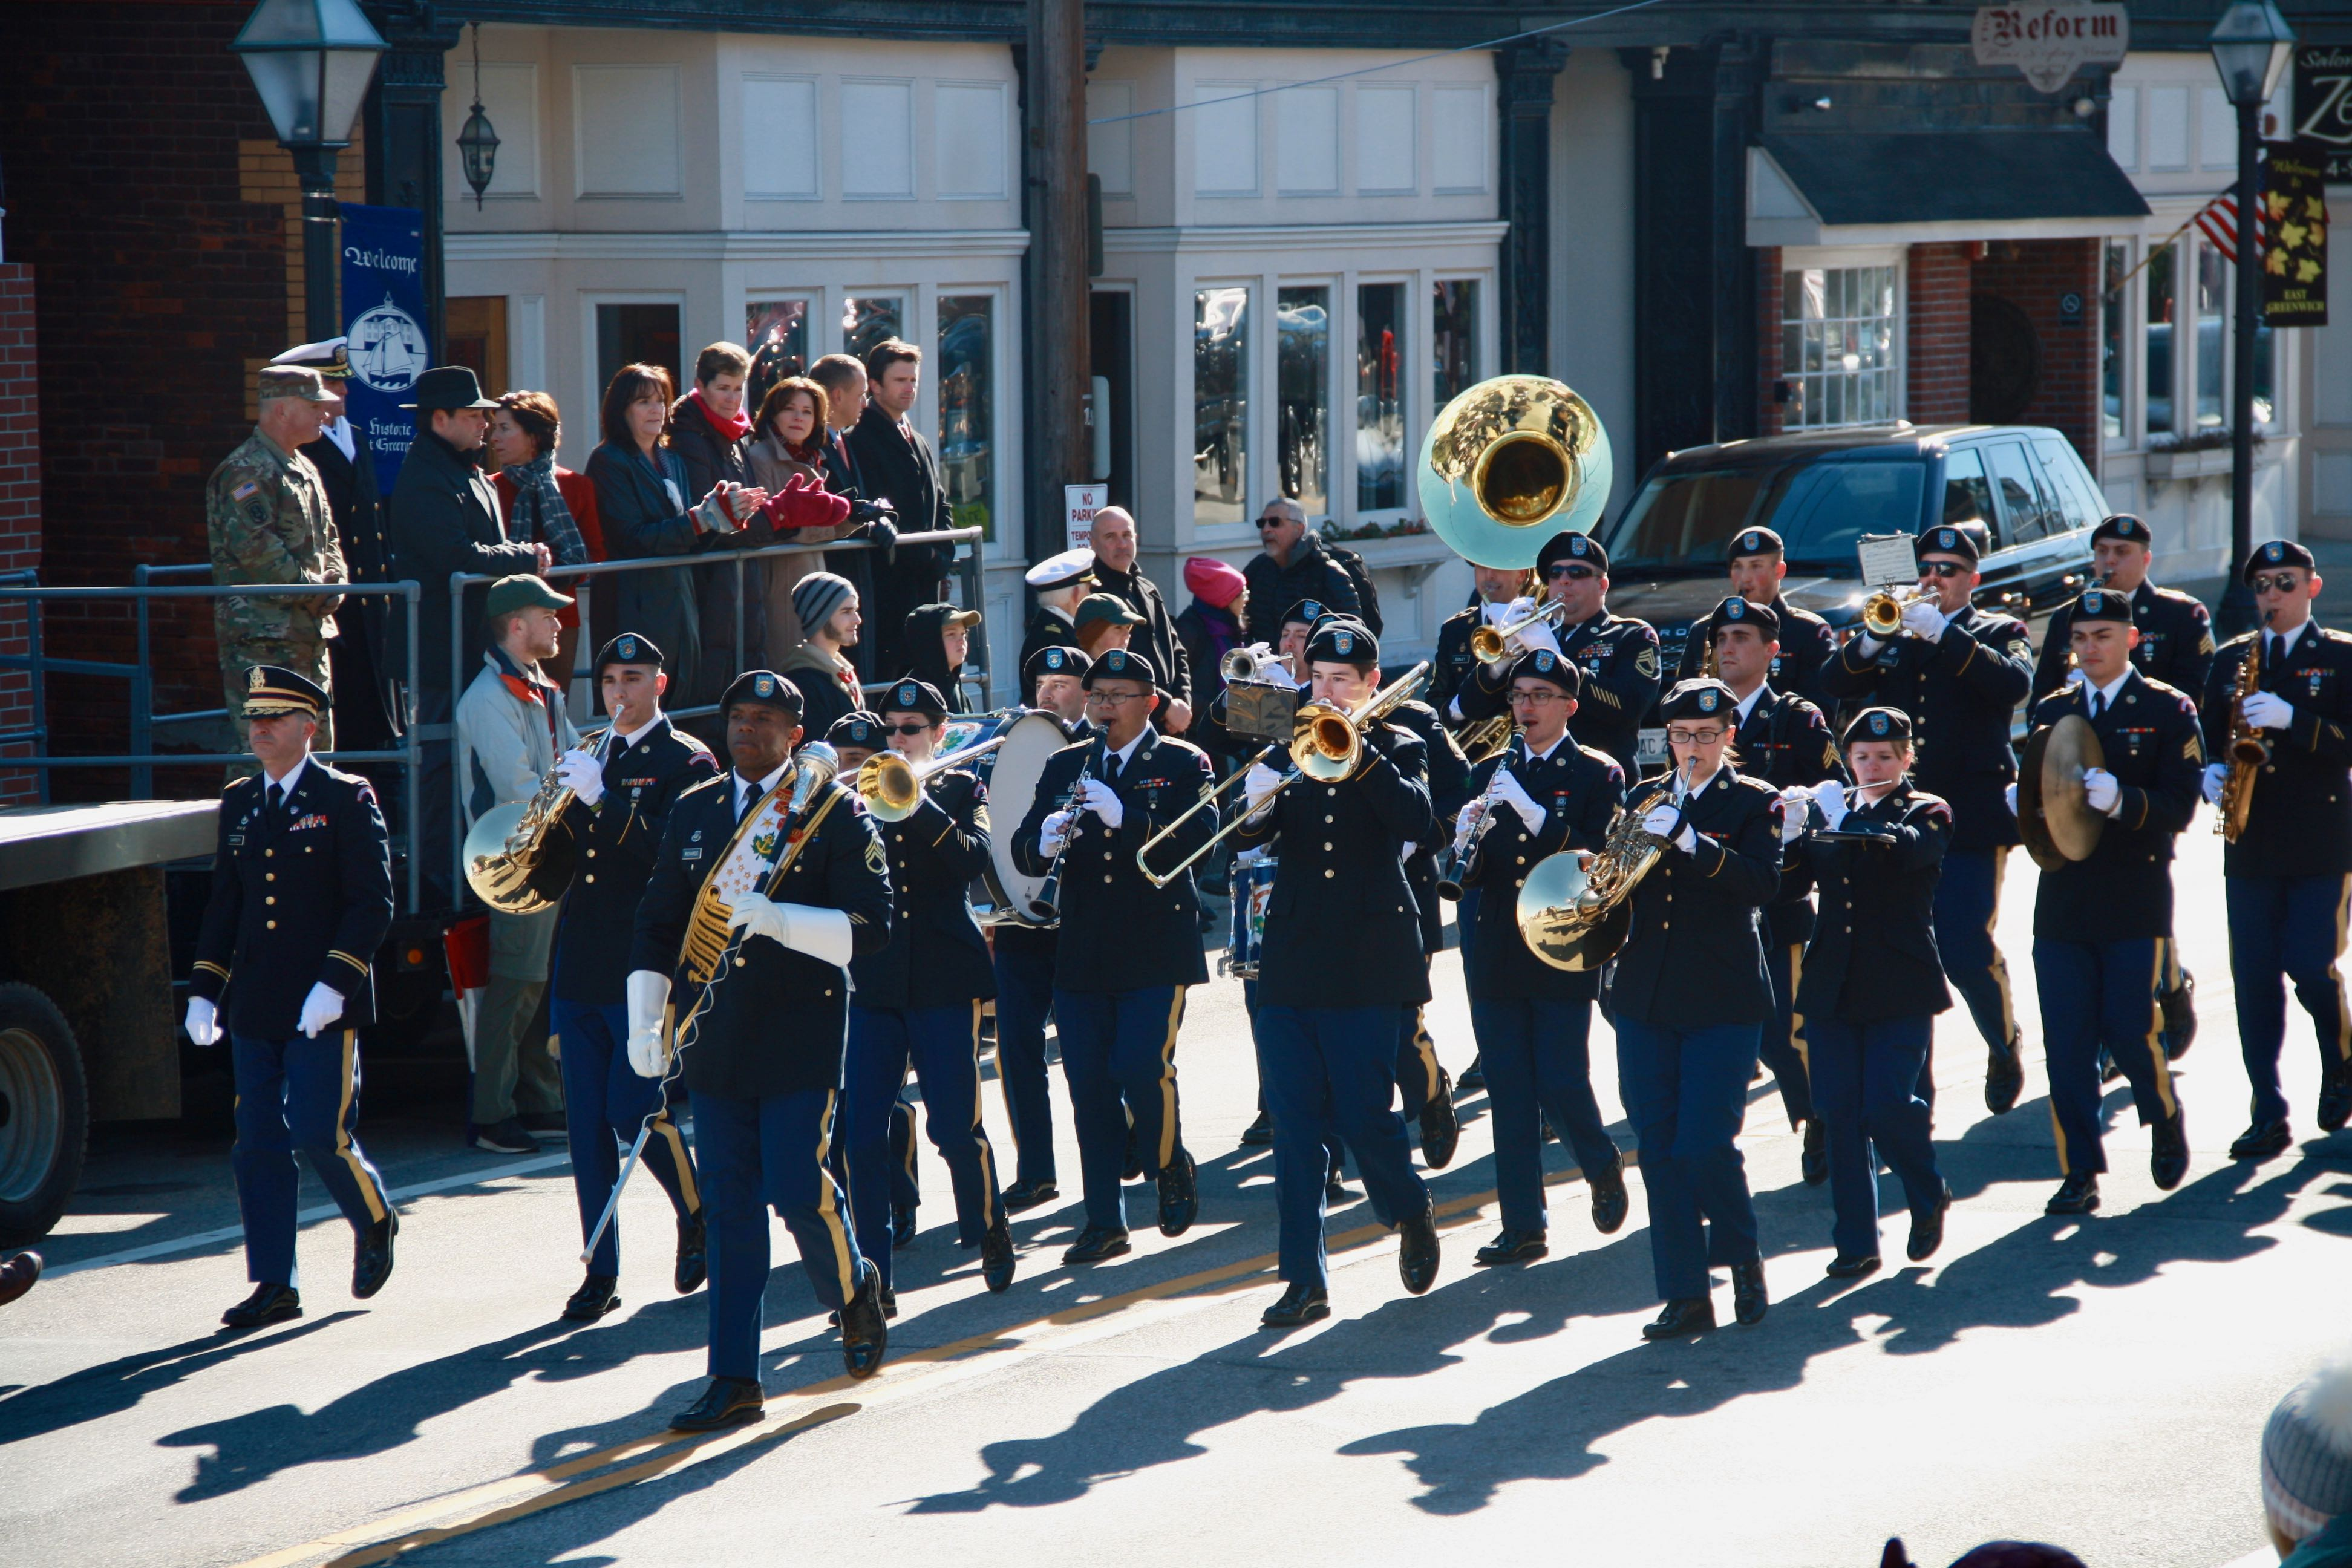 """The Governor's Own"" 88th Army Band from the RI National Guard."